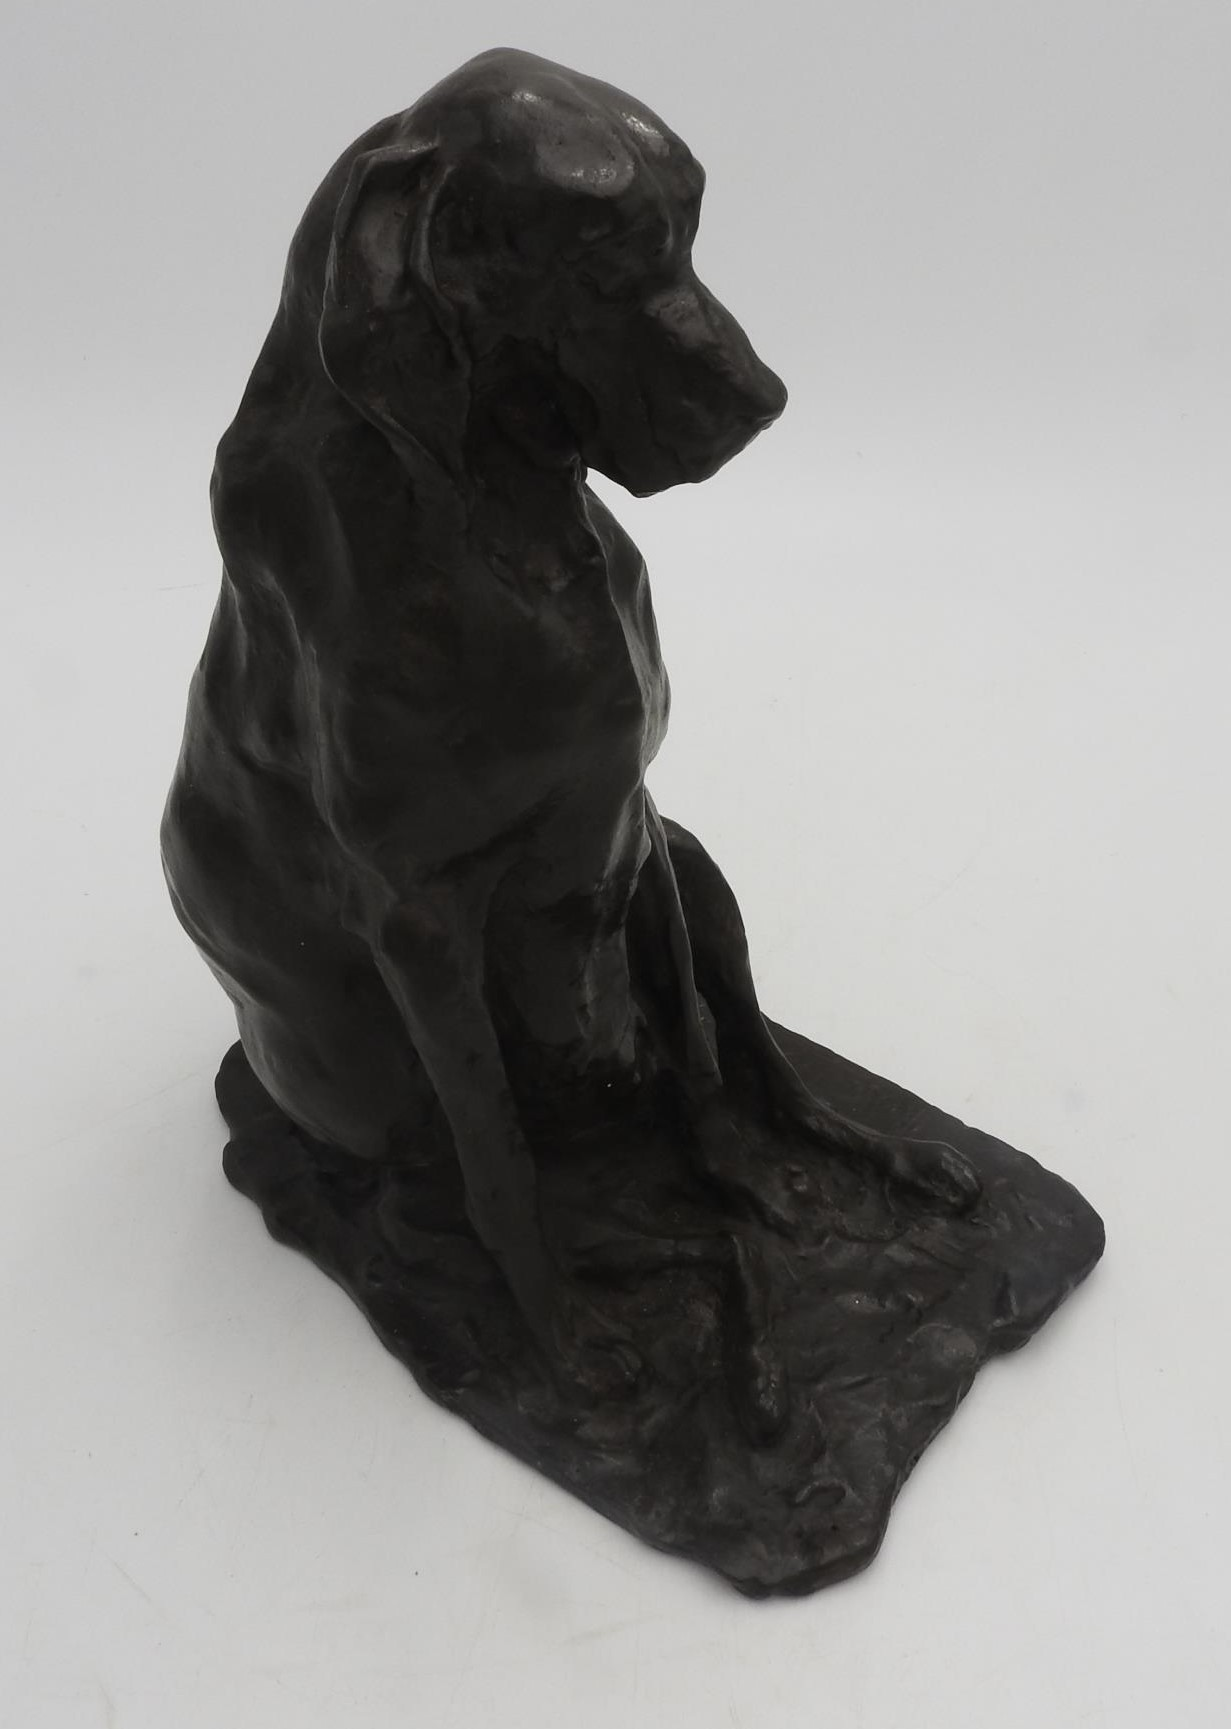 A BRONZE FIGURE OF SEATED DOG SIGNED AND DATED PAOLO TROUBETZKOY 1893, dark brown patina, 25 cm high - Image 4 of 5